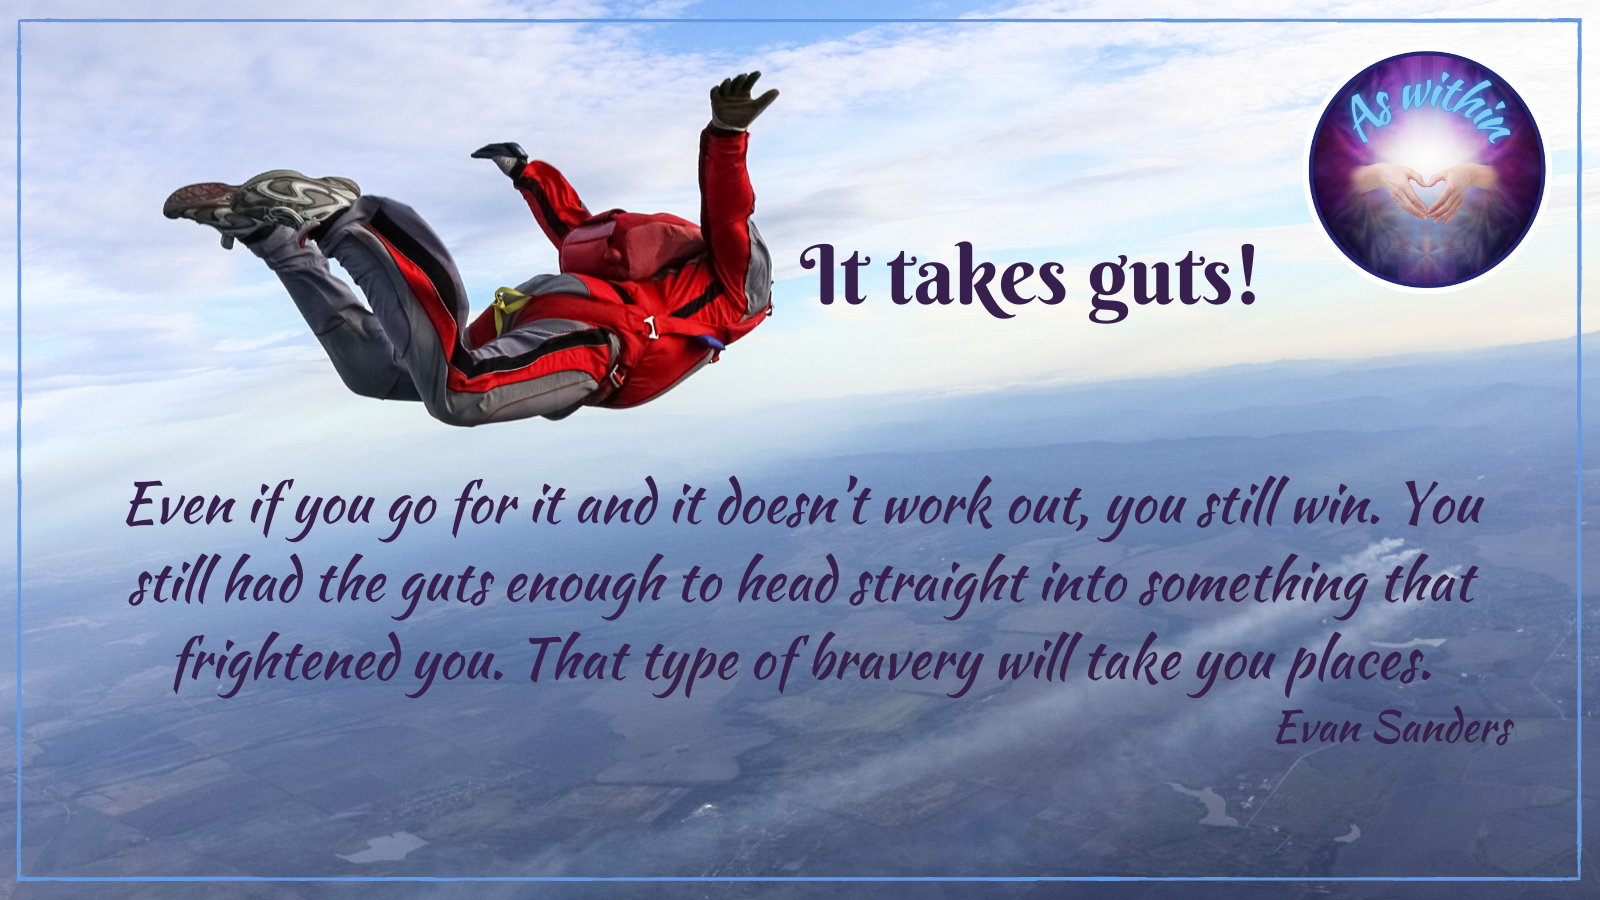 Even if you go for it and it doesn't work out, you still win. You still had the guts enough to head straight into something that frightened you. That type of bravery will take you places Evan Sanders, gutsy courage, motivation and movement, core identity, self-preservation, safety & security